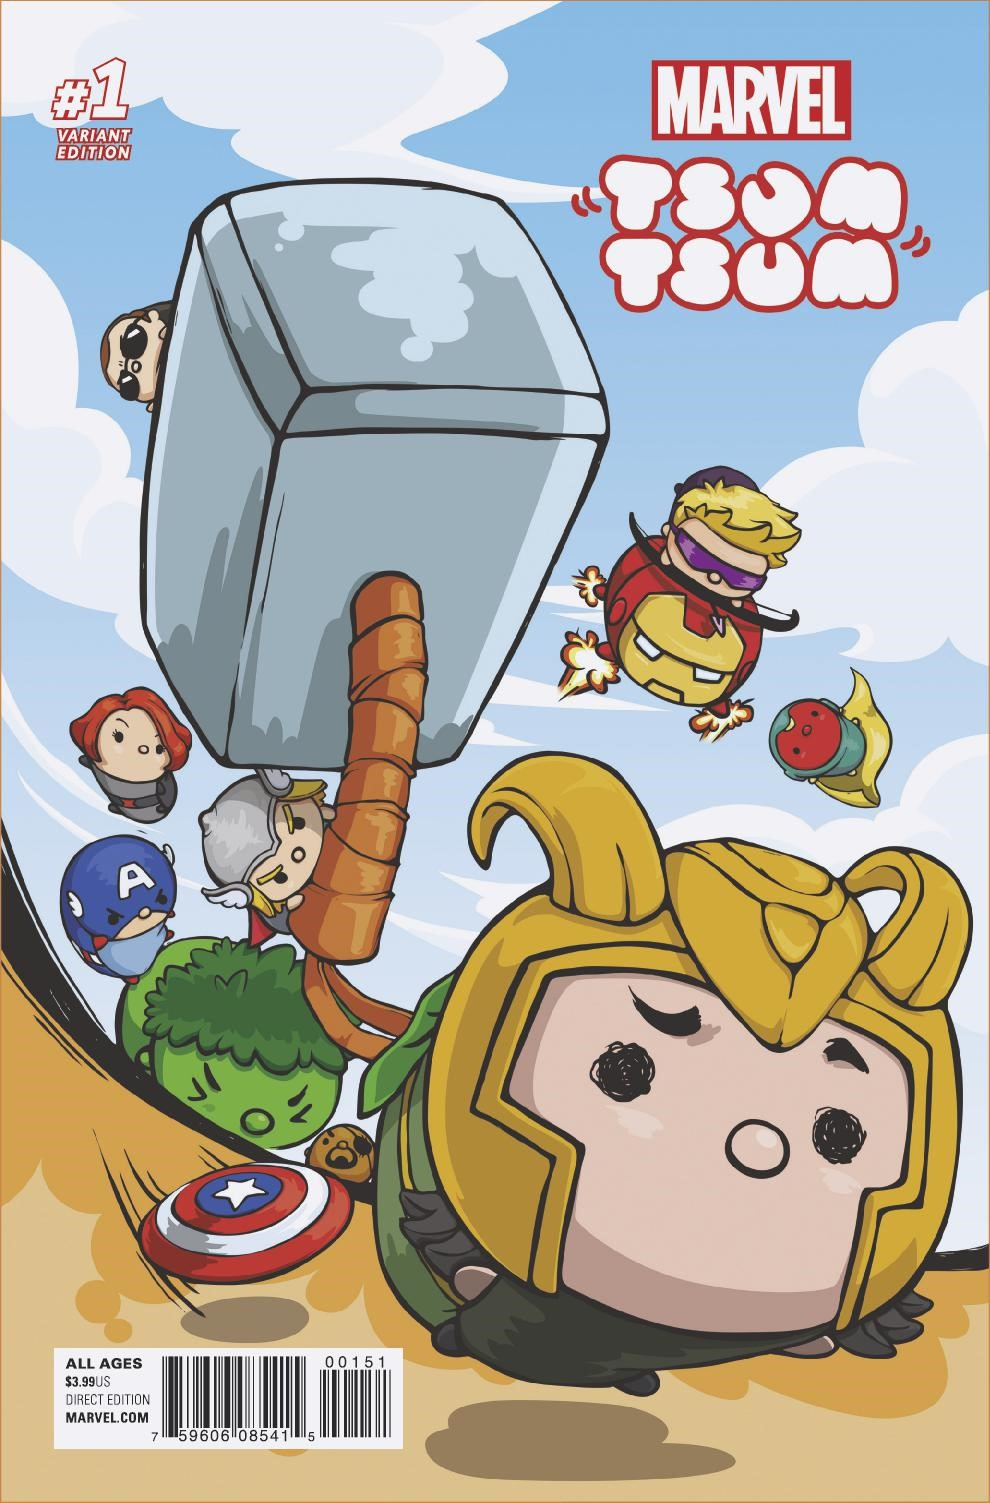 MARVEL TSUM TSUM #1 Brings Pint-Sized Heroes to the Marvel Universe in Your First Look!